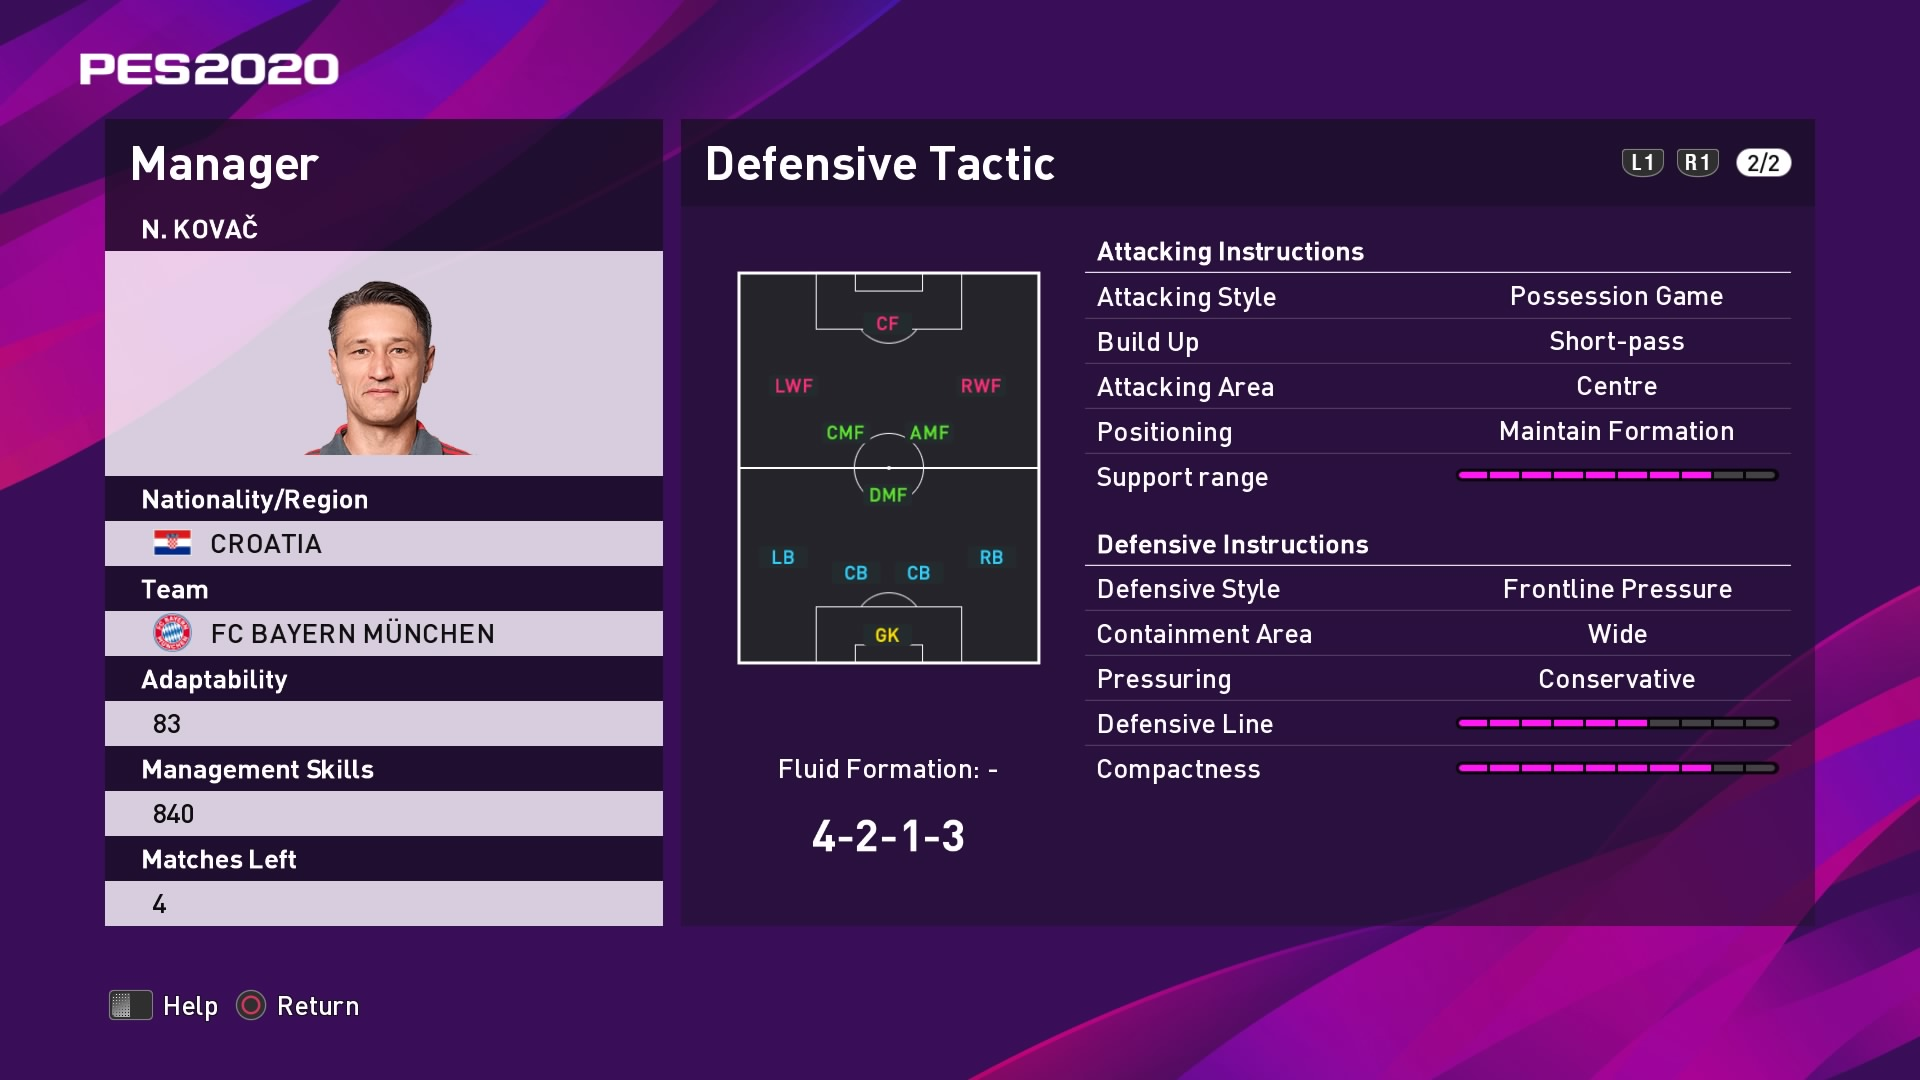 N. Kovač (Niko Kovač) Defensive Tactic in PES 2020 myClub